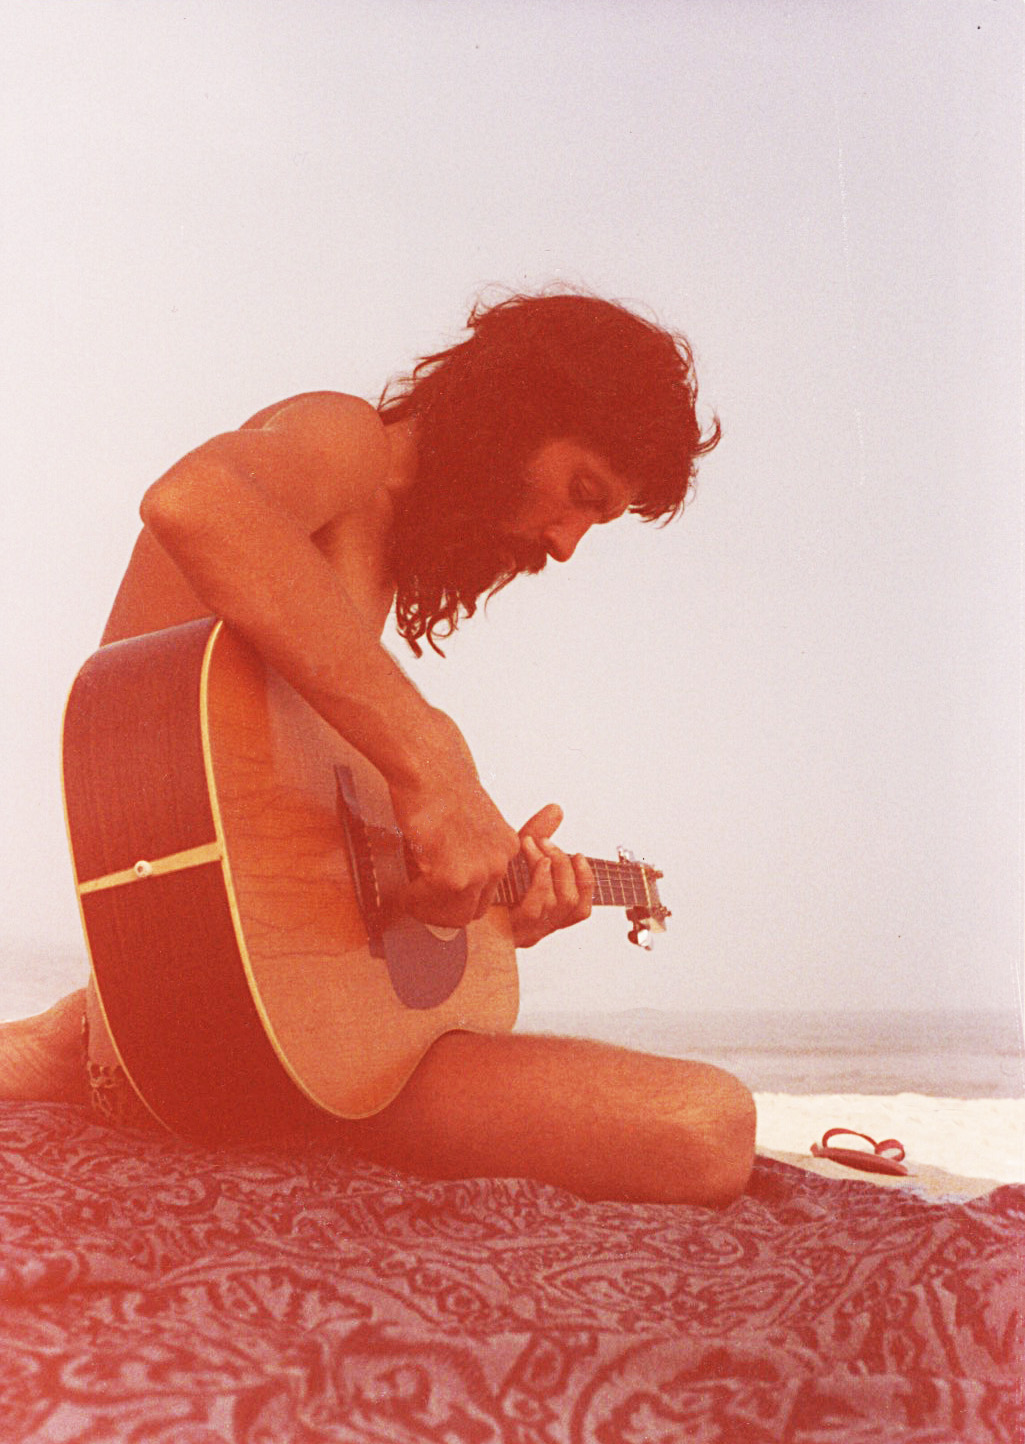 Bill guitar on the beach.jpg